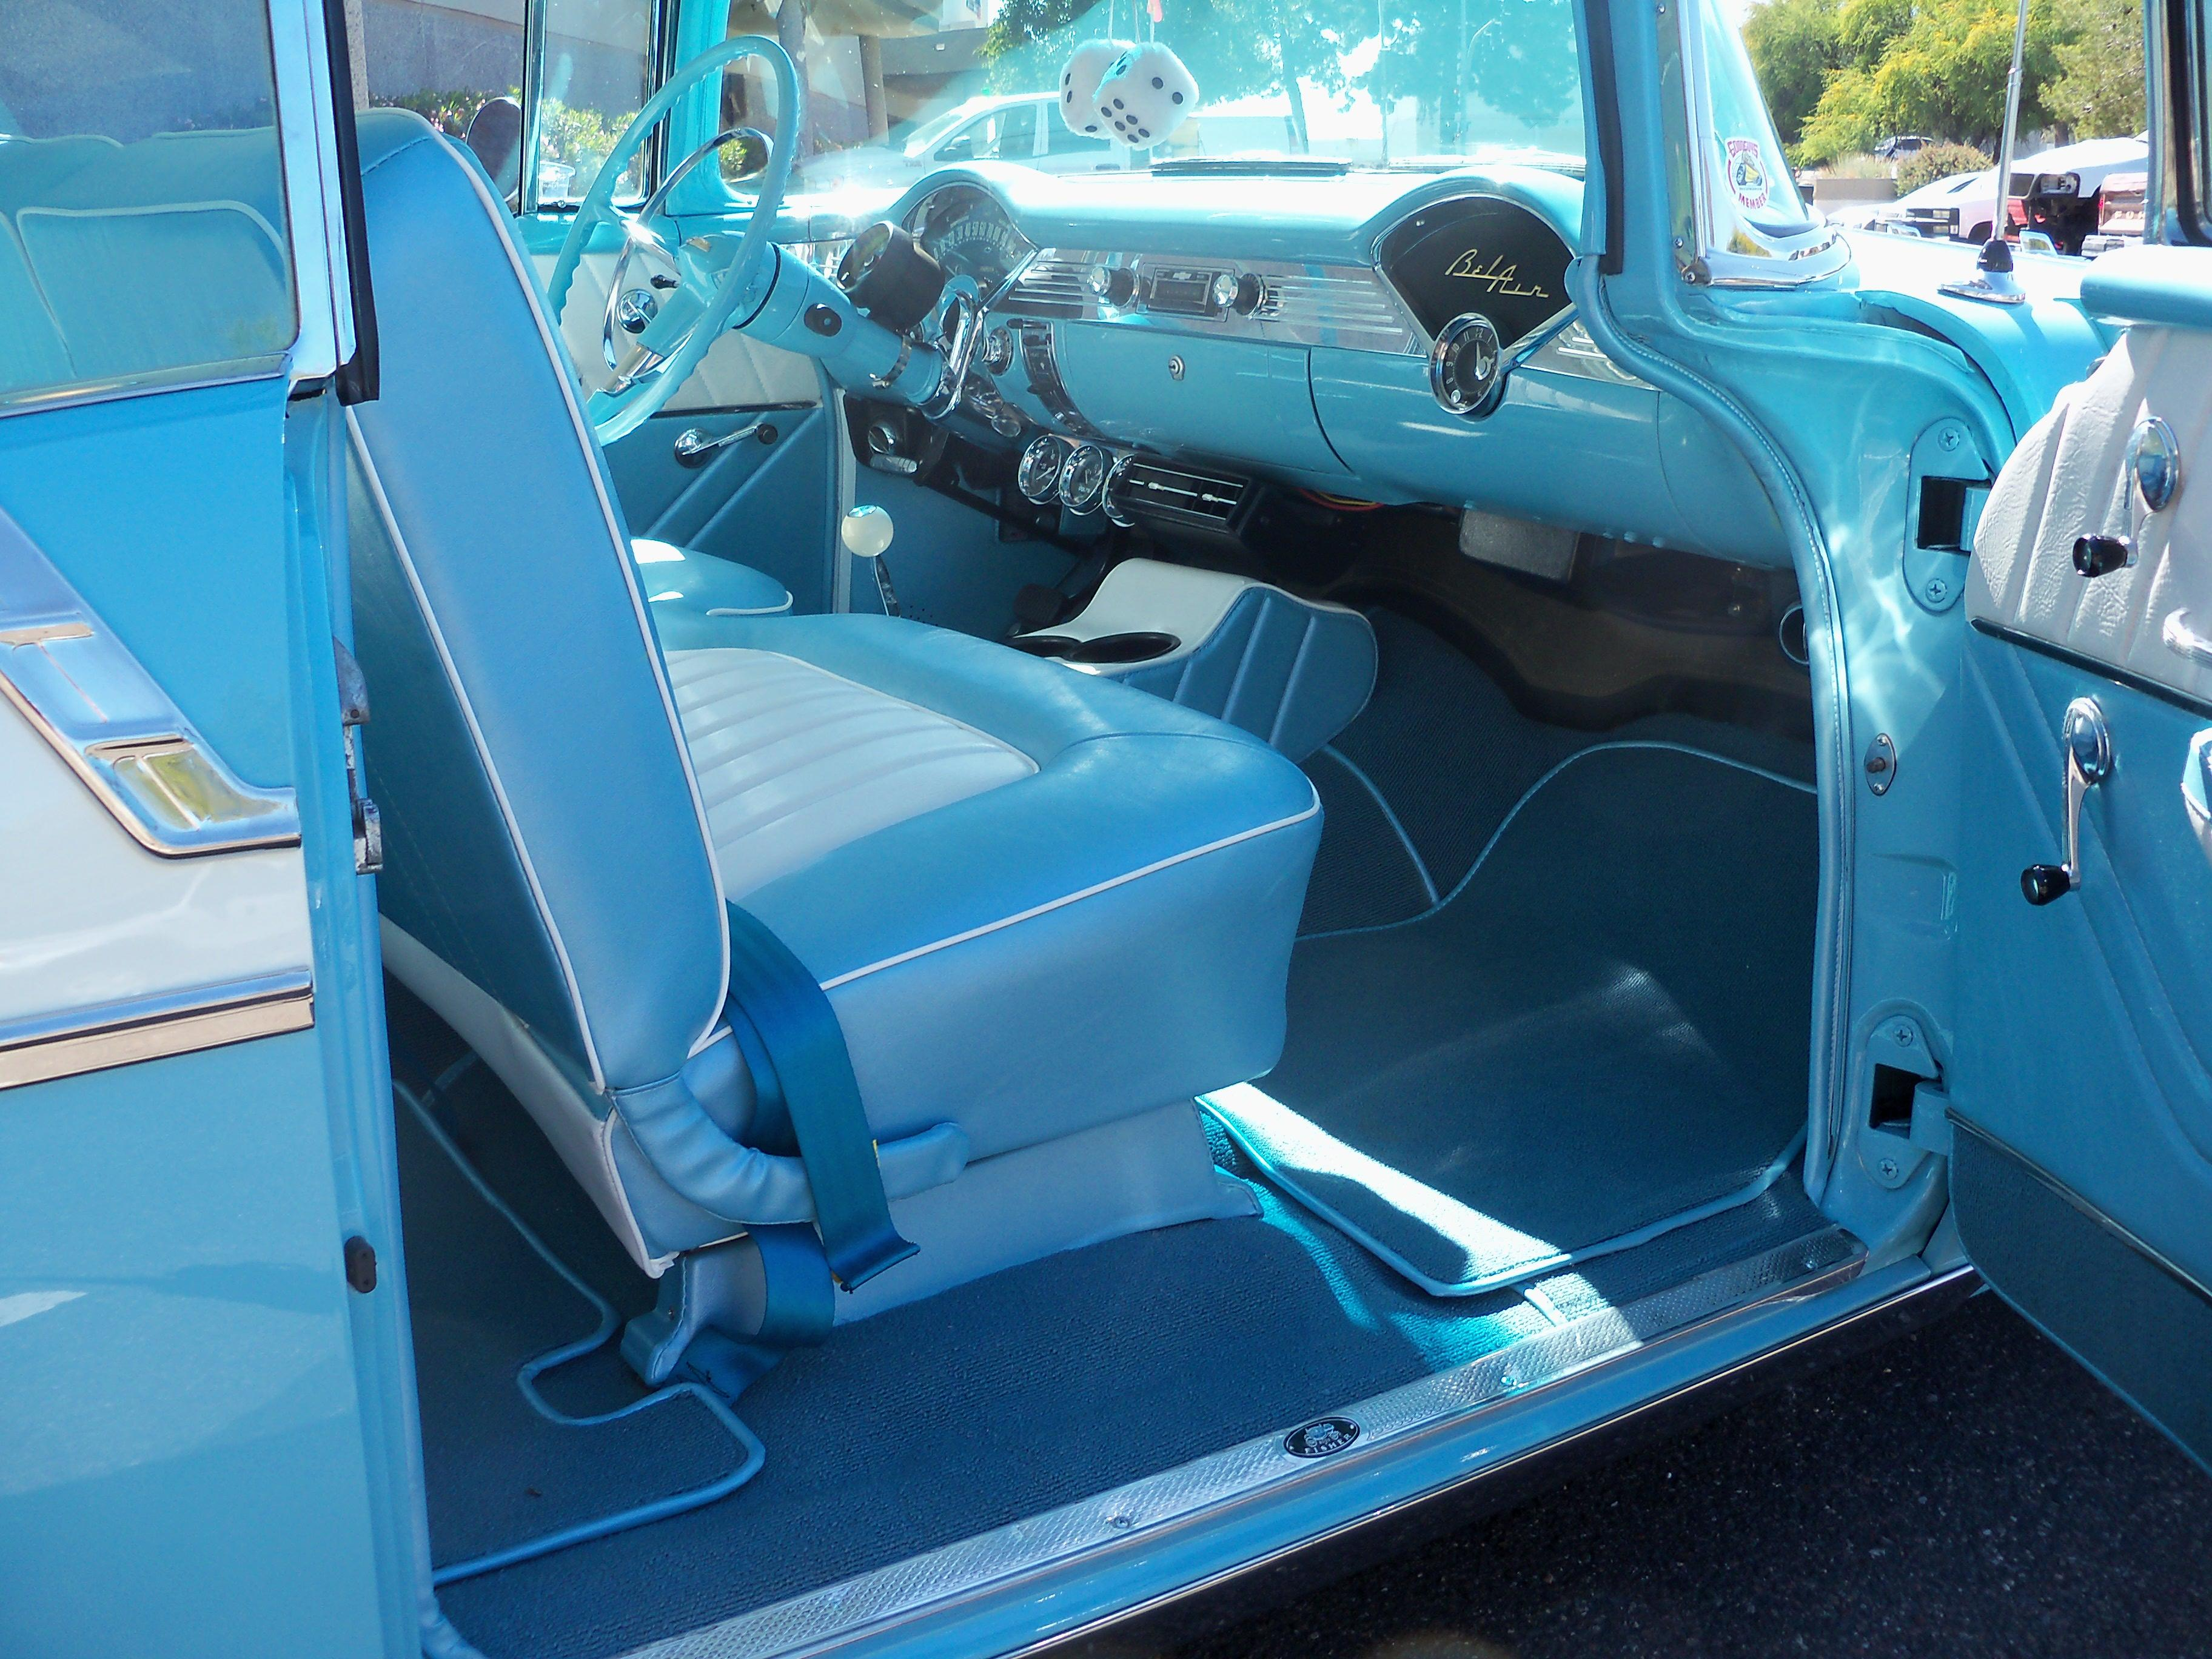 Auto Spa Upholstery Services image 7